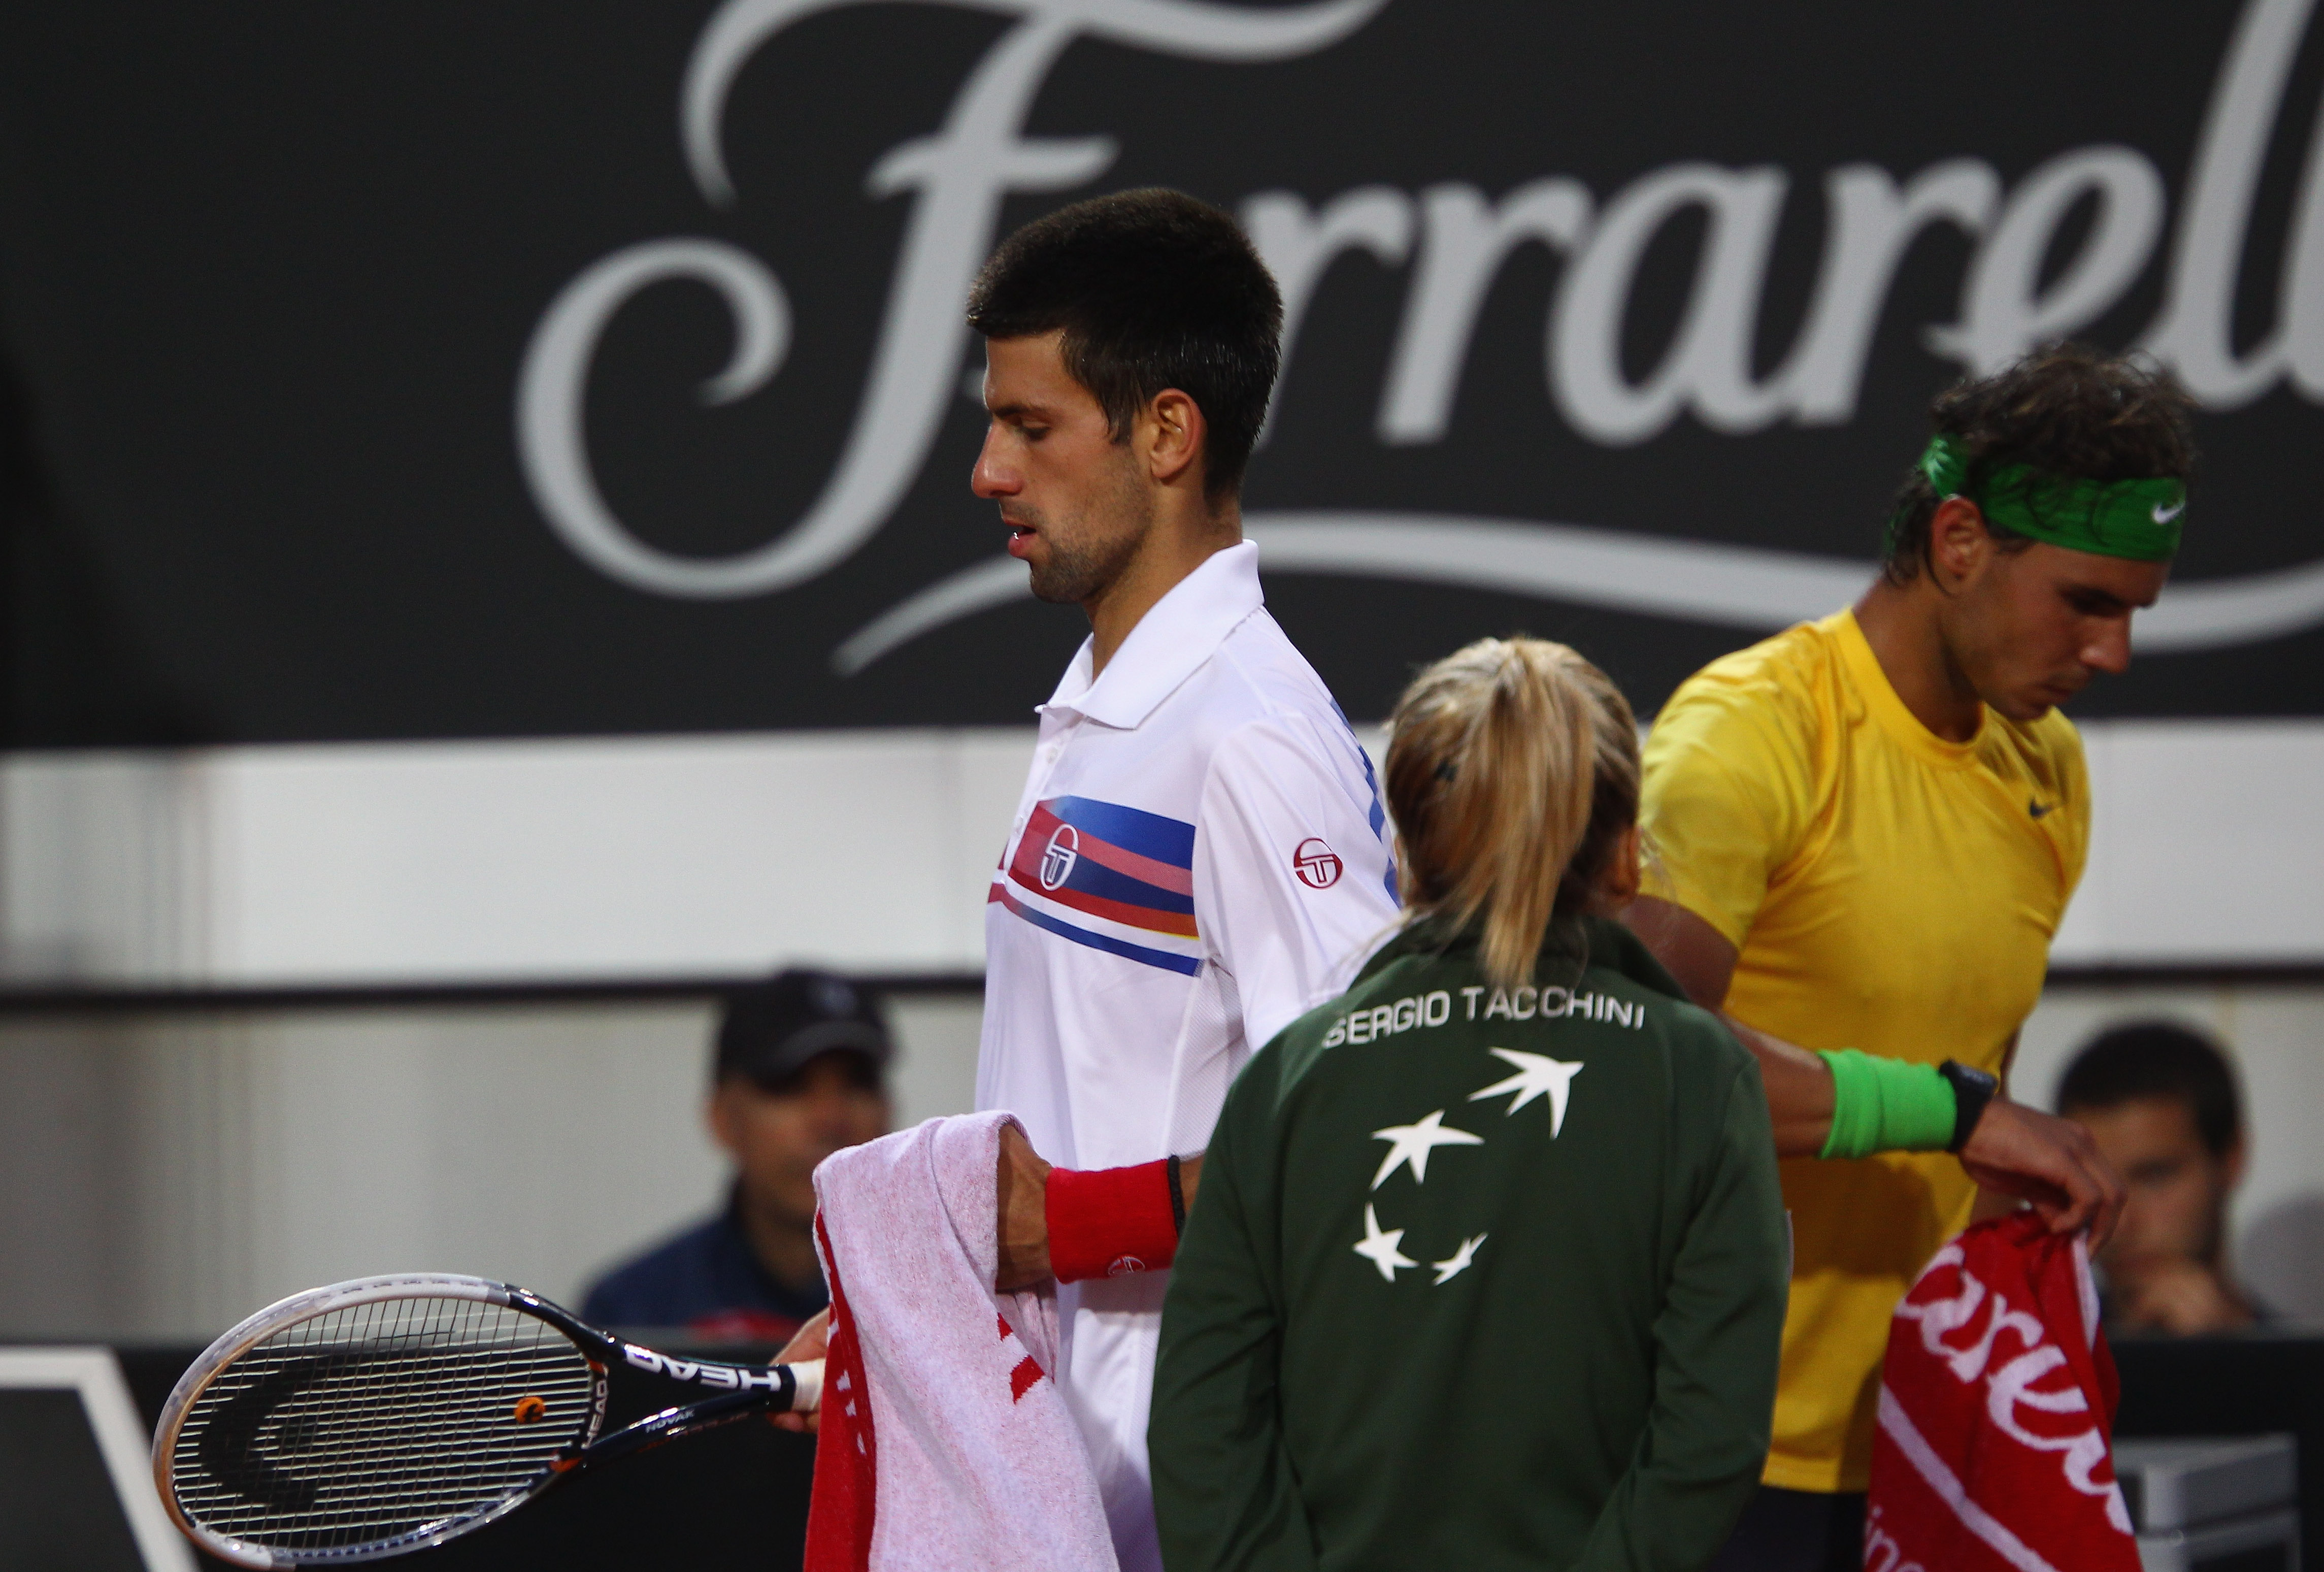 ROME, ITALY - MAY 15:  Novak Djokovic of Serbia walks from the change over during the final against Rafael Nadal of Spain during day eight of the Internazoinali BNL D'Italia at the Foro Italico Tennis Centre on May 15, 2011 in Rome, Italy.  (Photo by Cliv